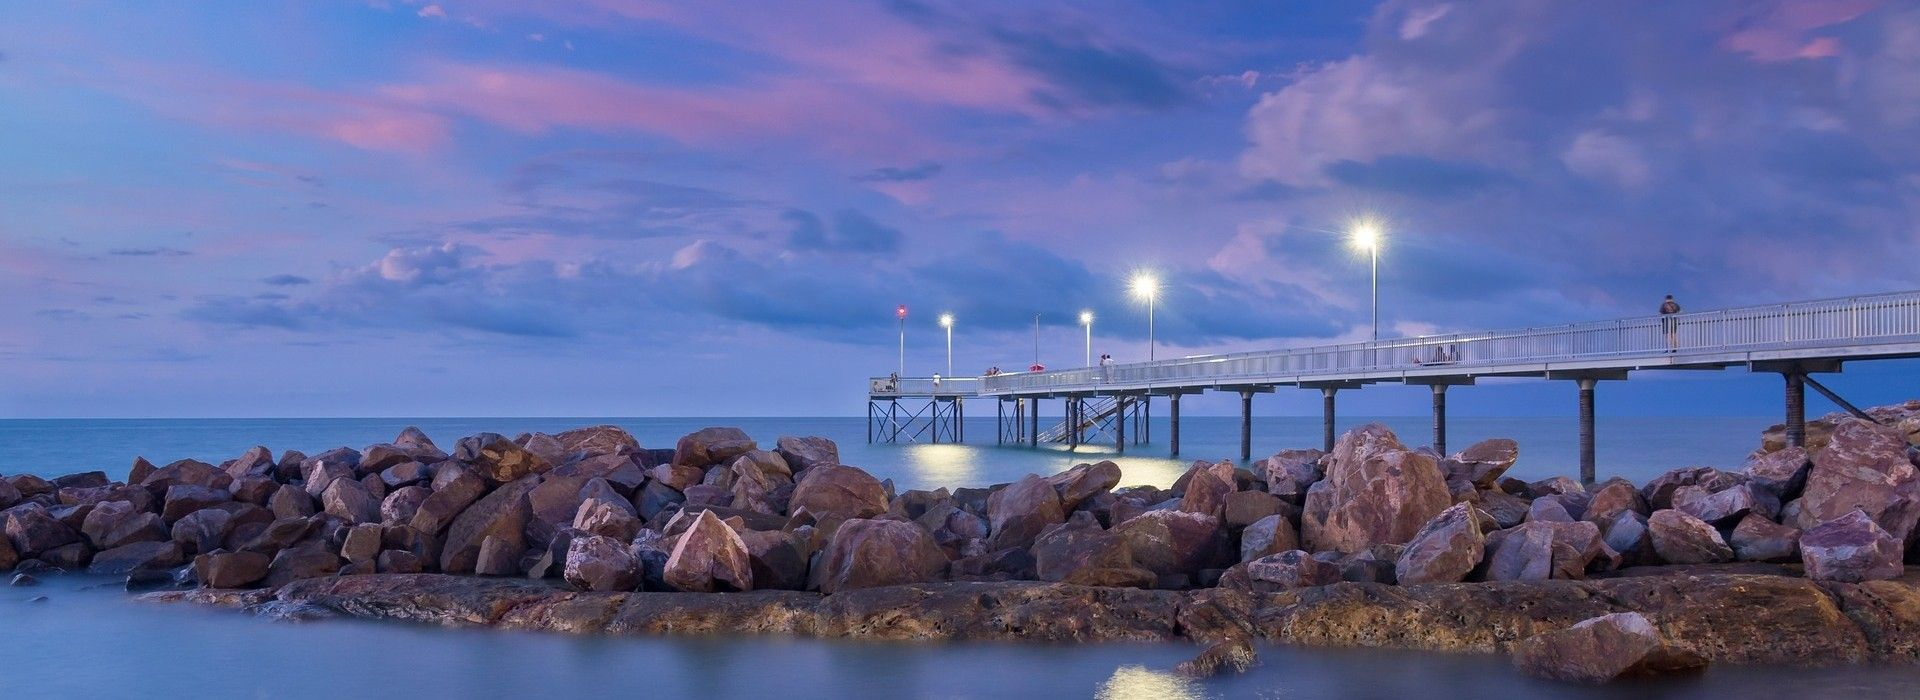 Nightcliff Jetty in Darwin is a great place to enjoy the sunset and sunrise or to throw a fishing line to get the catch of the day.